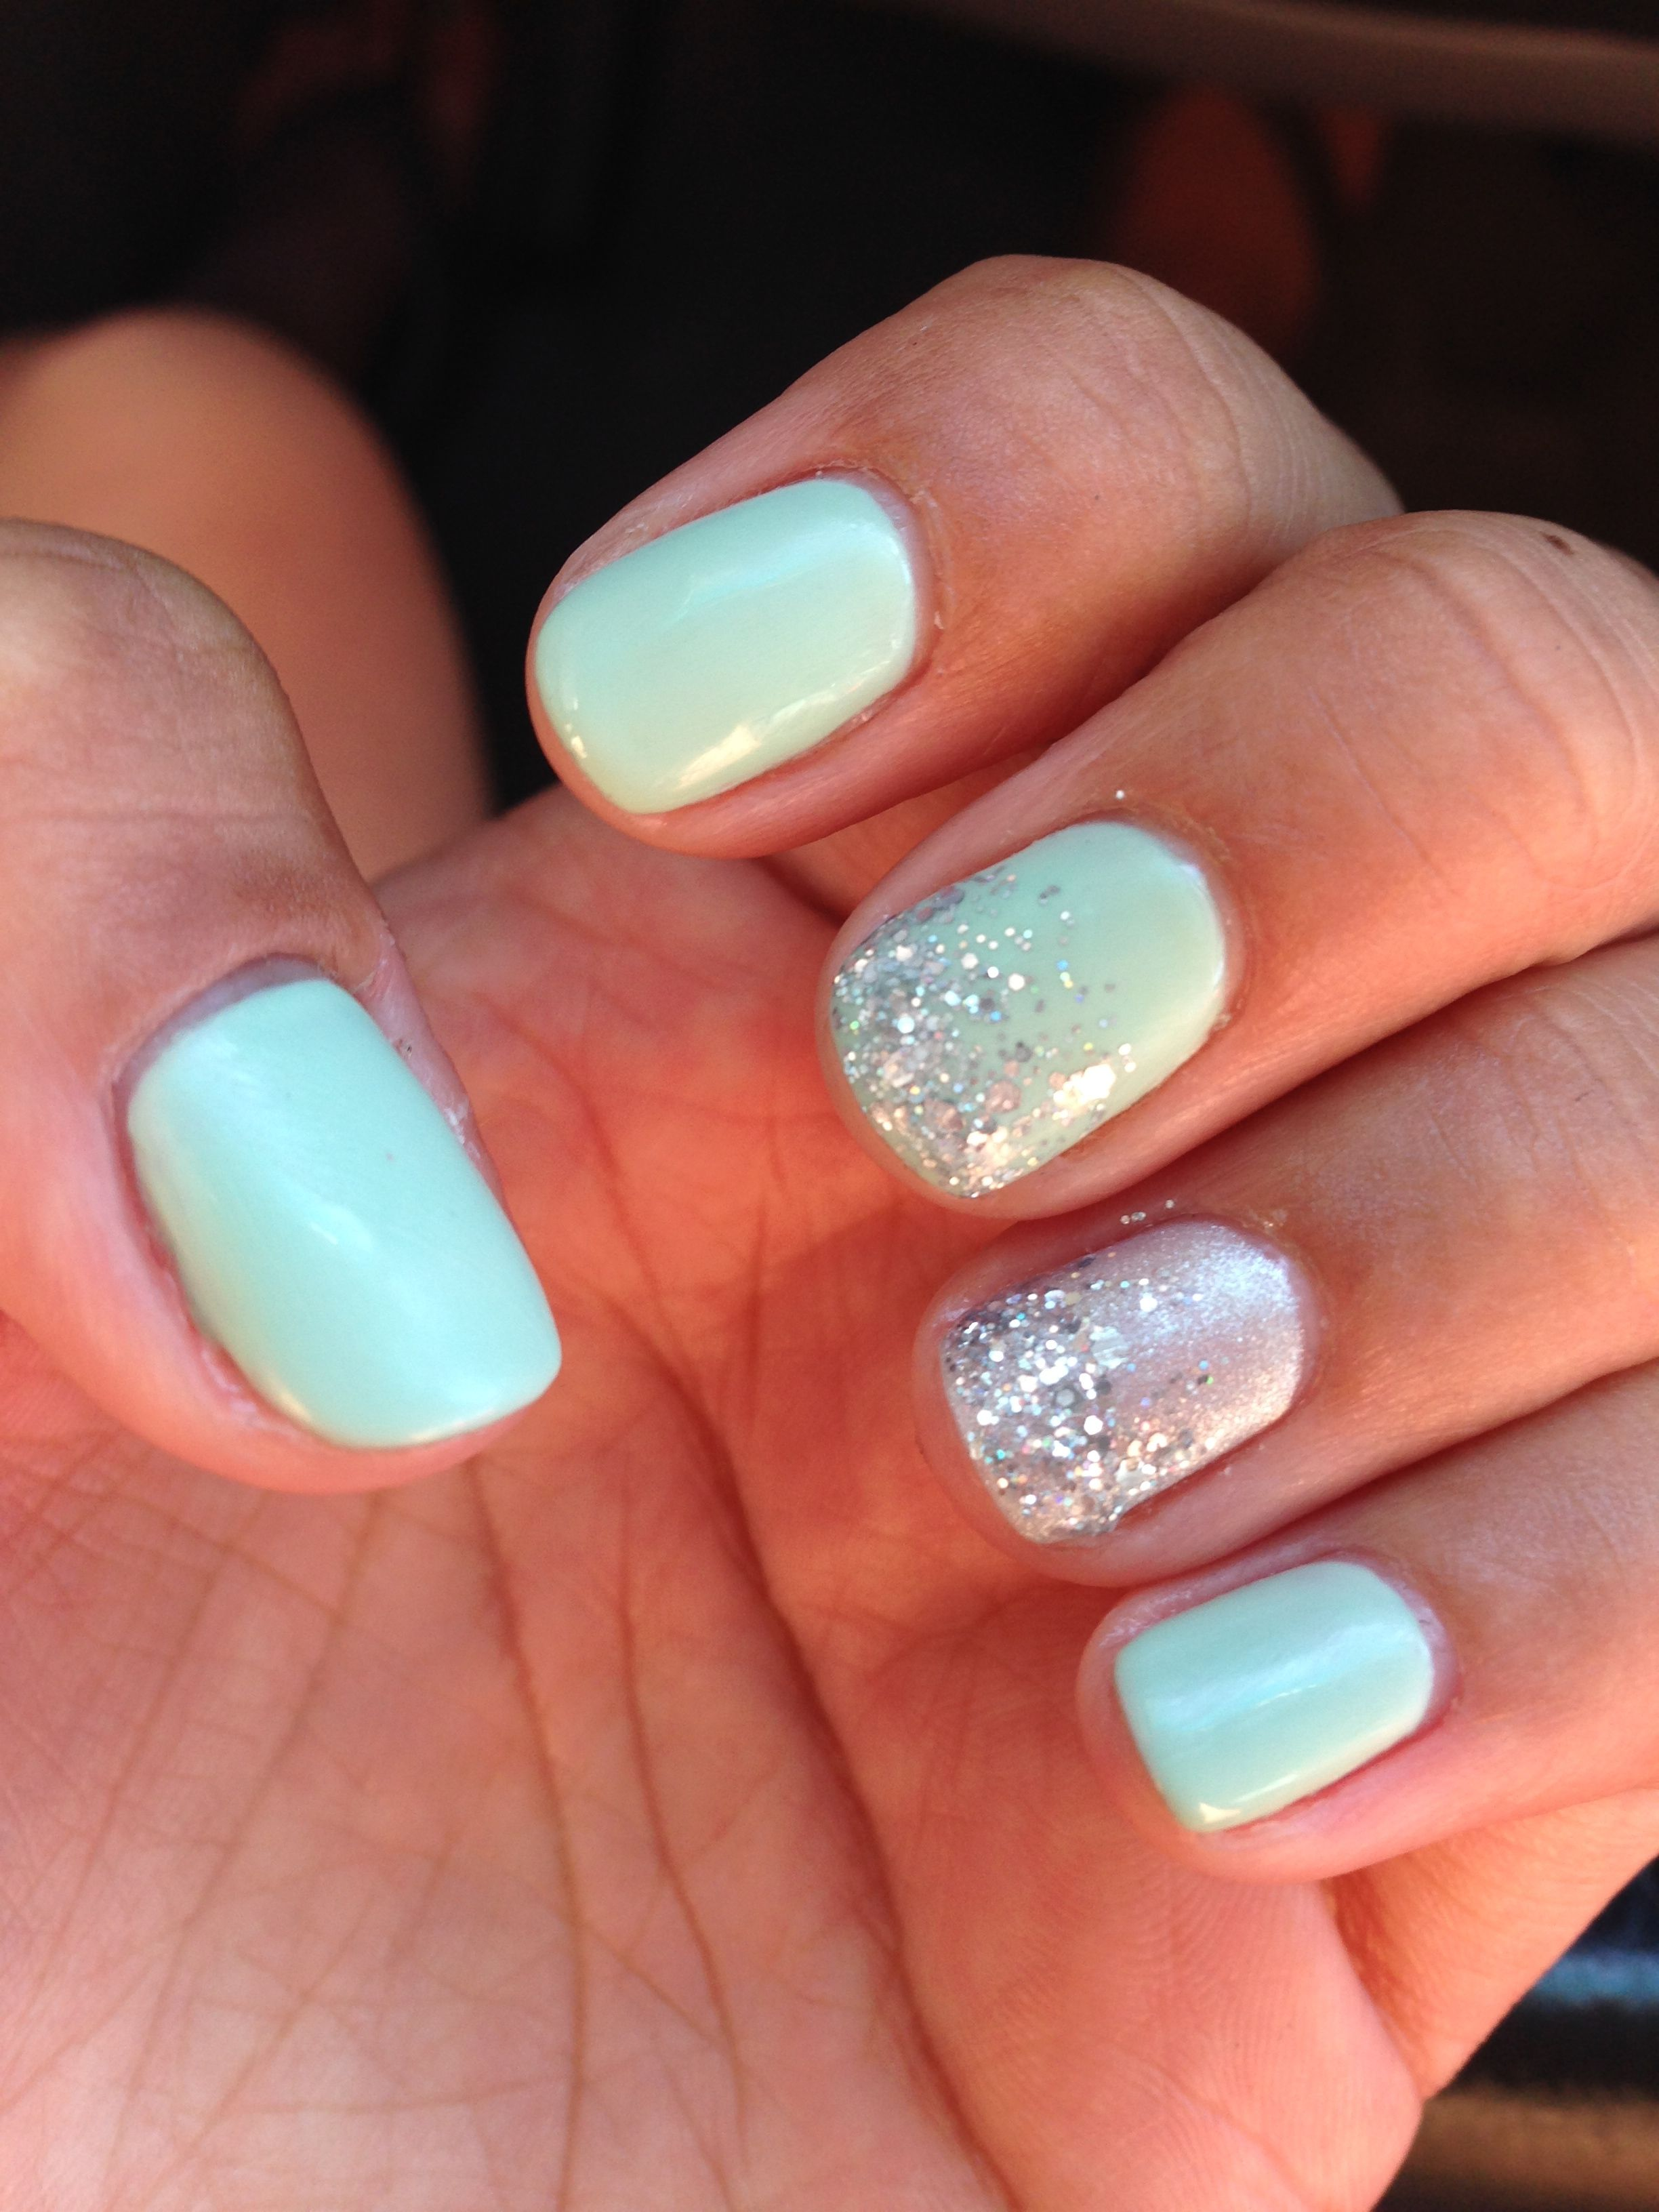 Mint shellac nails with sparkle #nails #teal #sparkle | Nails ...